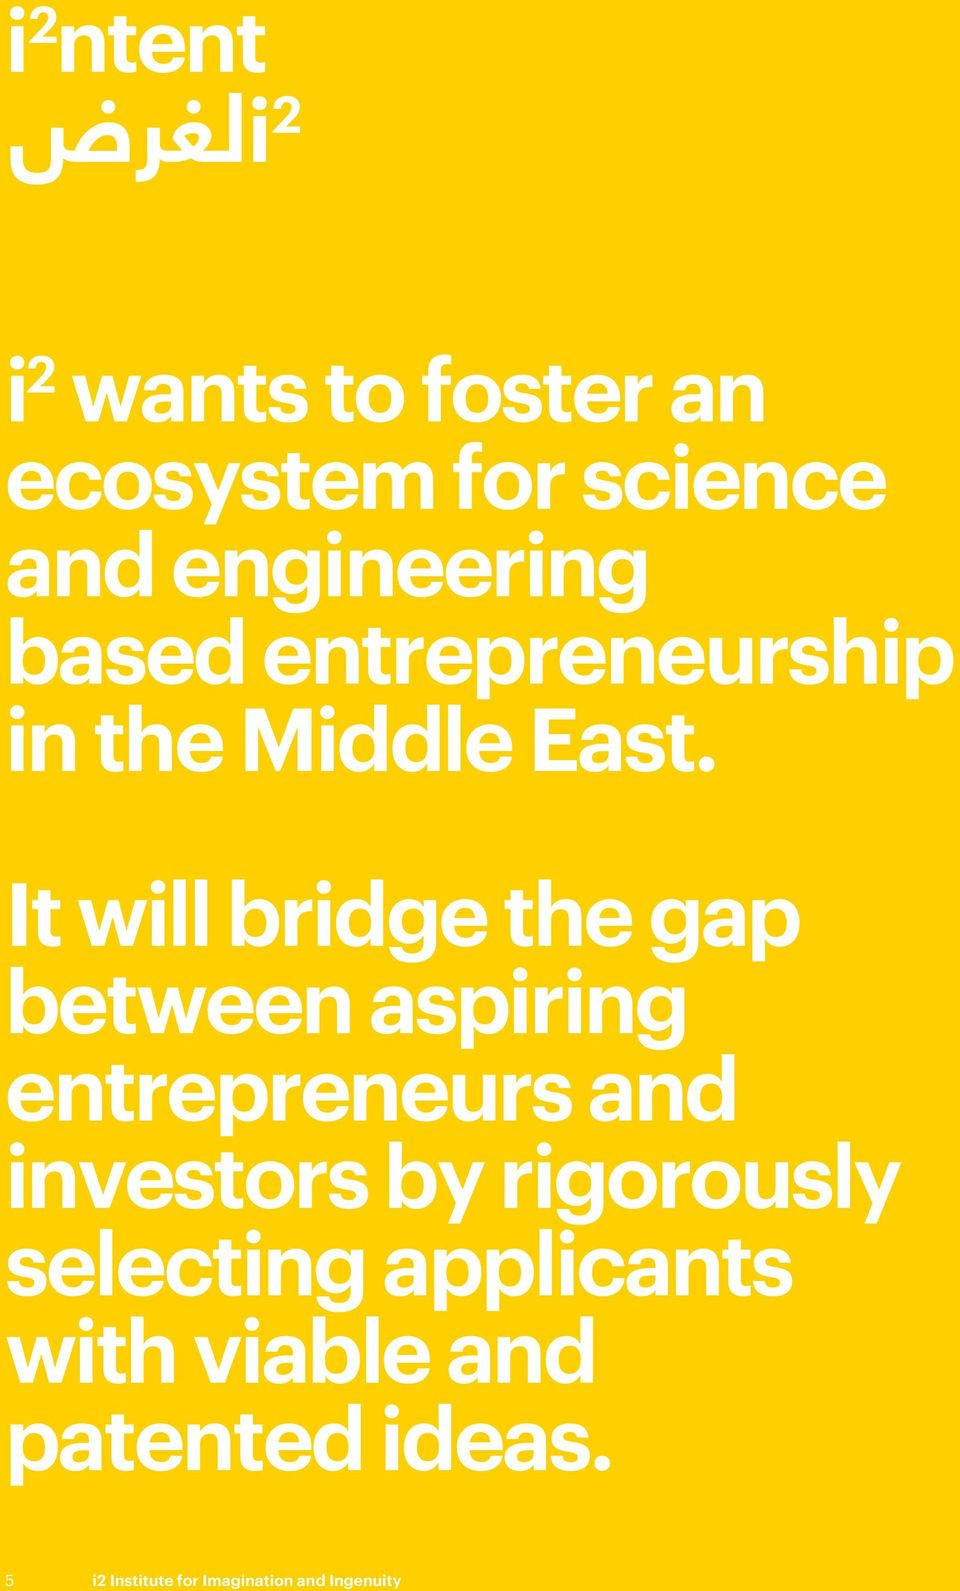 It will bridge the gap between aspiring entrepreneurs and investors by